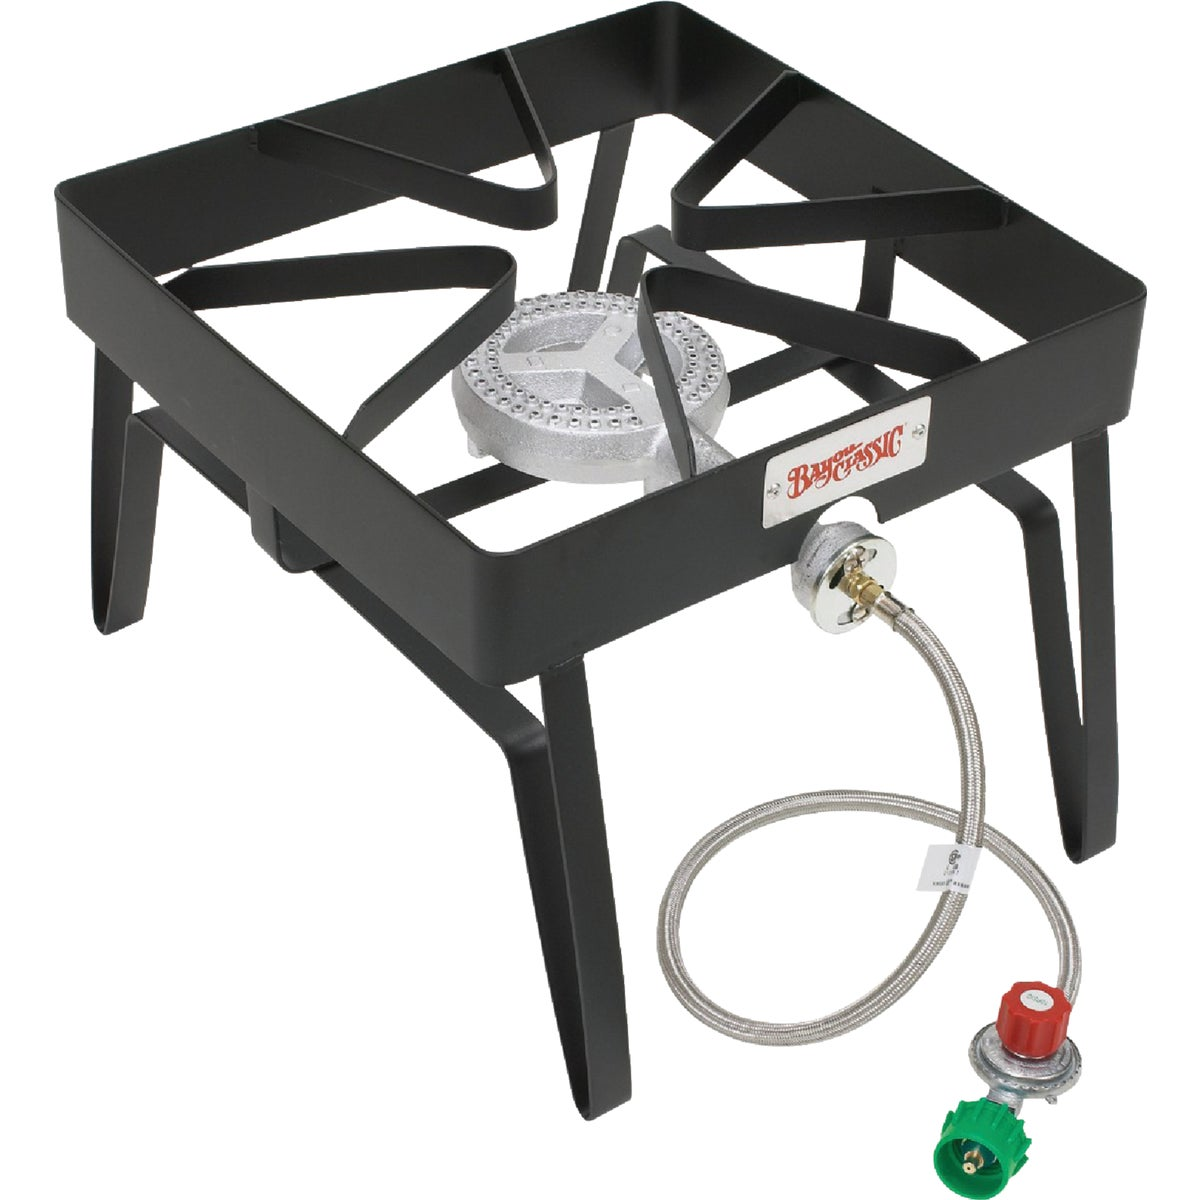 OUTDOOR PATIO STOVE - SQ14 by Barbour Intl